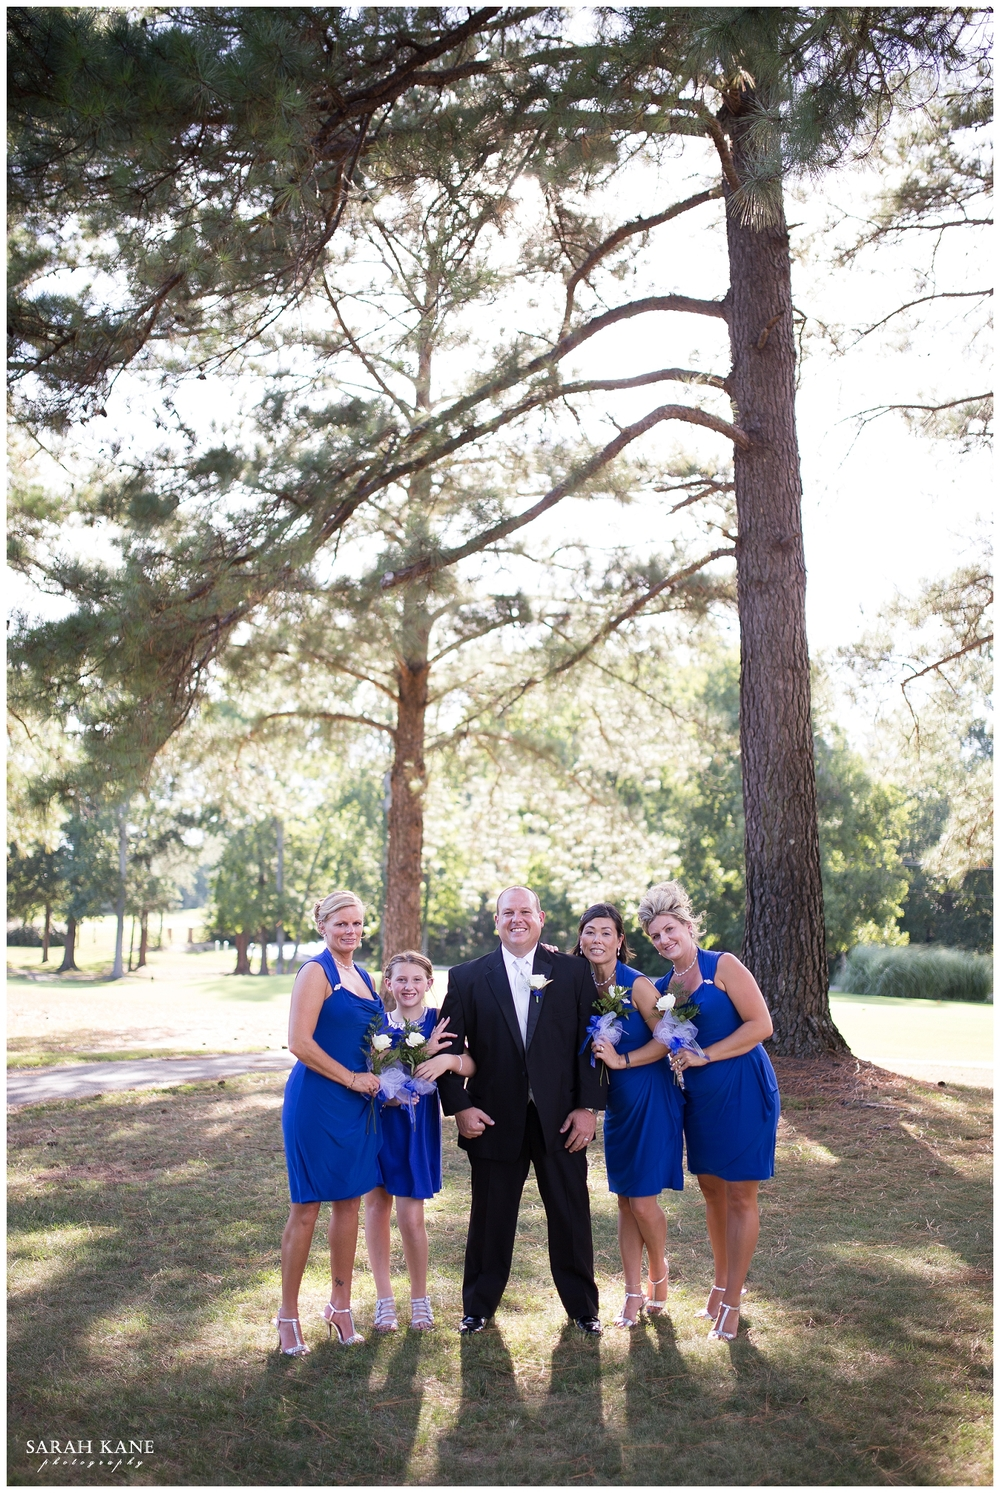 Blog - Petersburg VA Wedding - Sarah Kane Photography 239.JPG